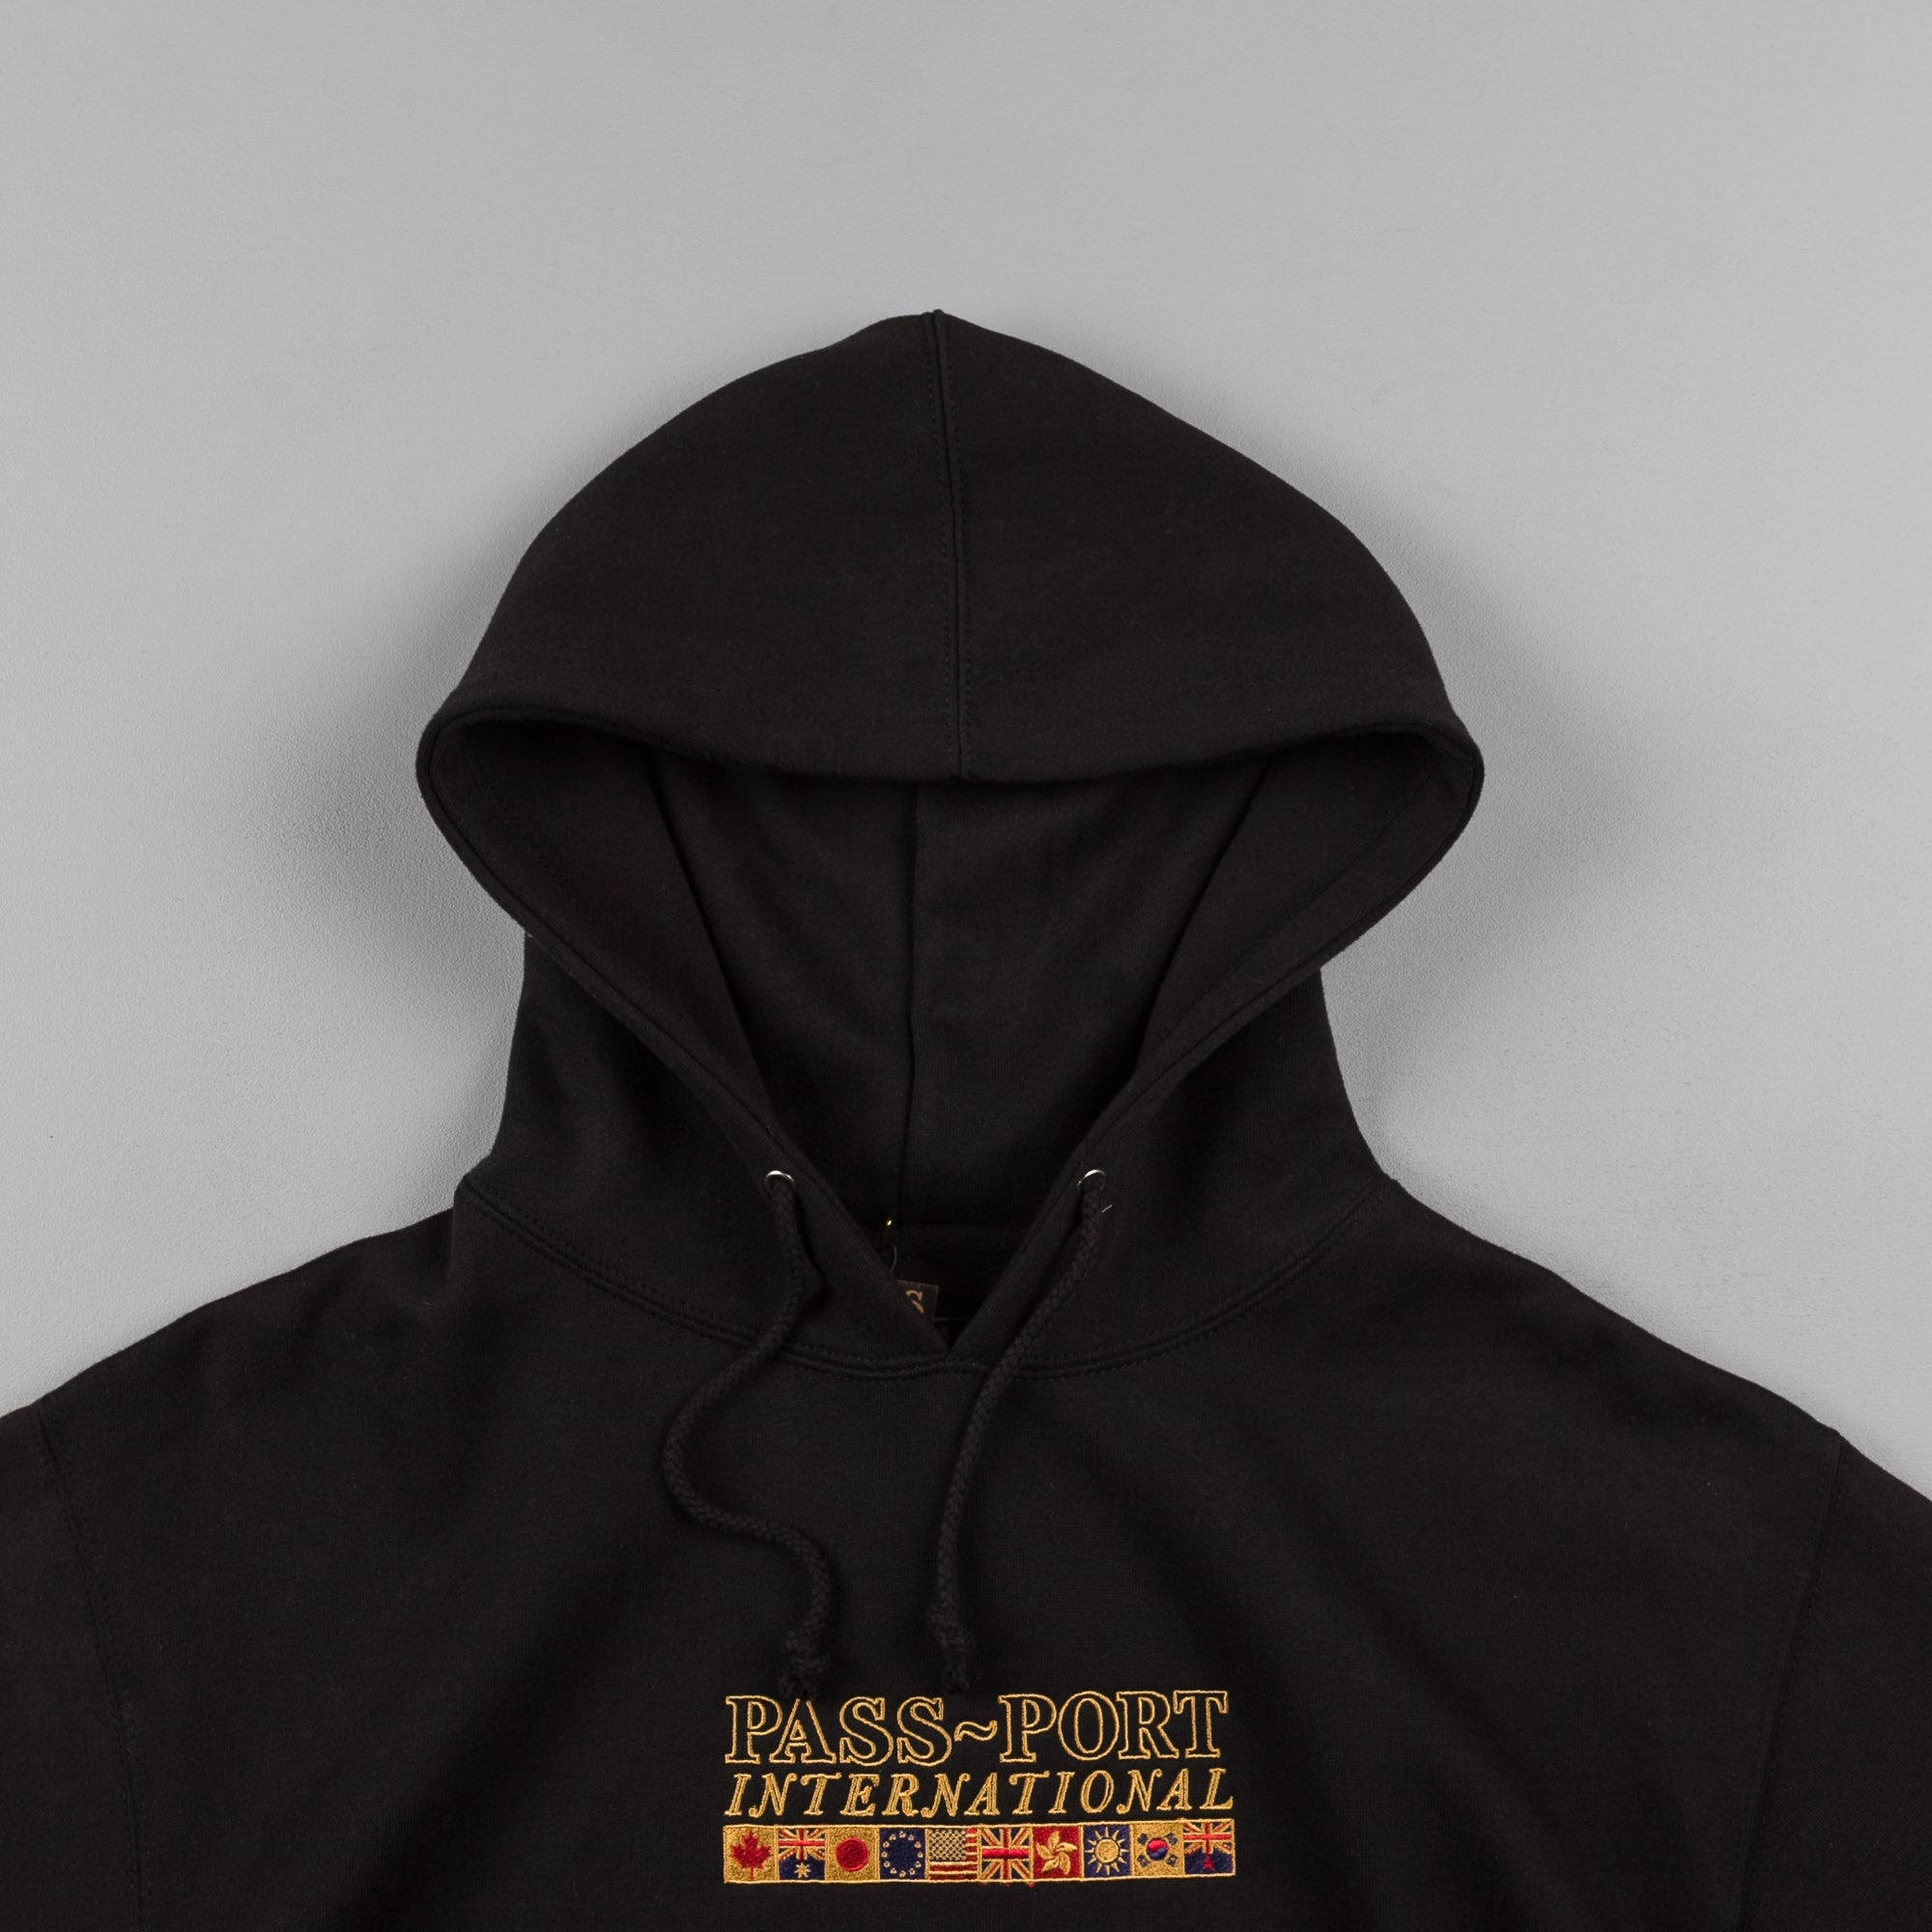 Pass Port International Embroidery Hooded Sweatshirt - Black